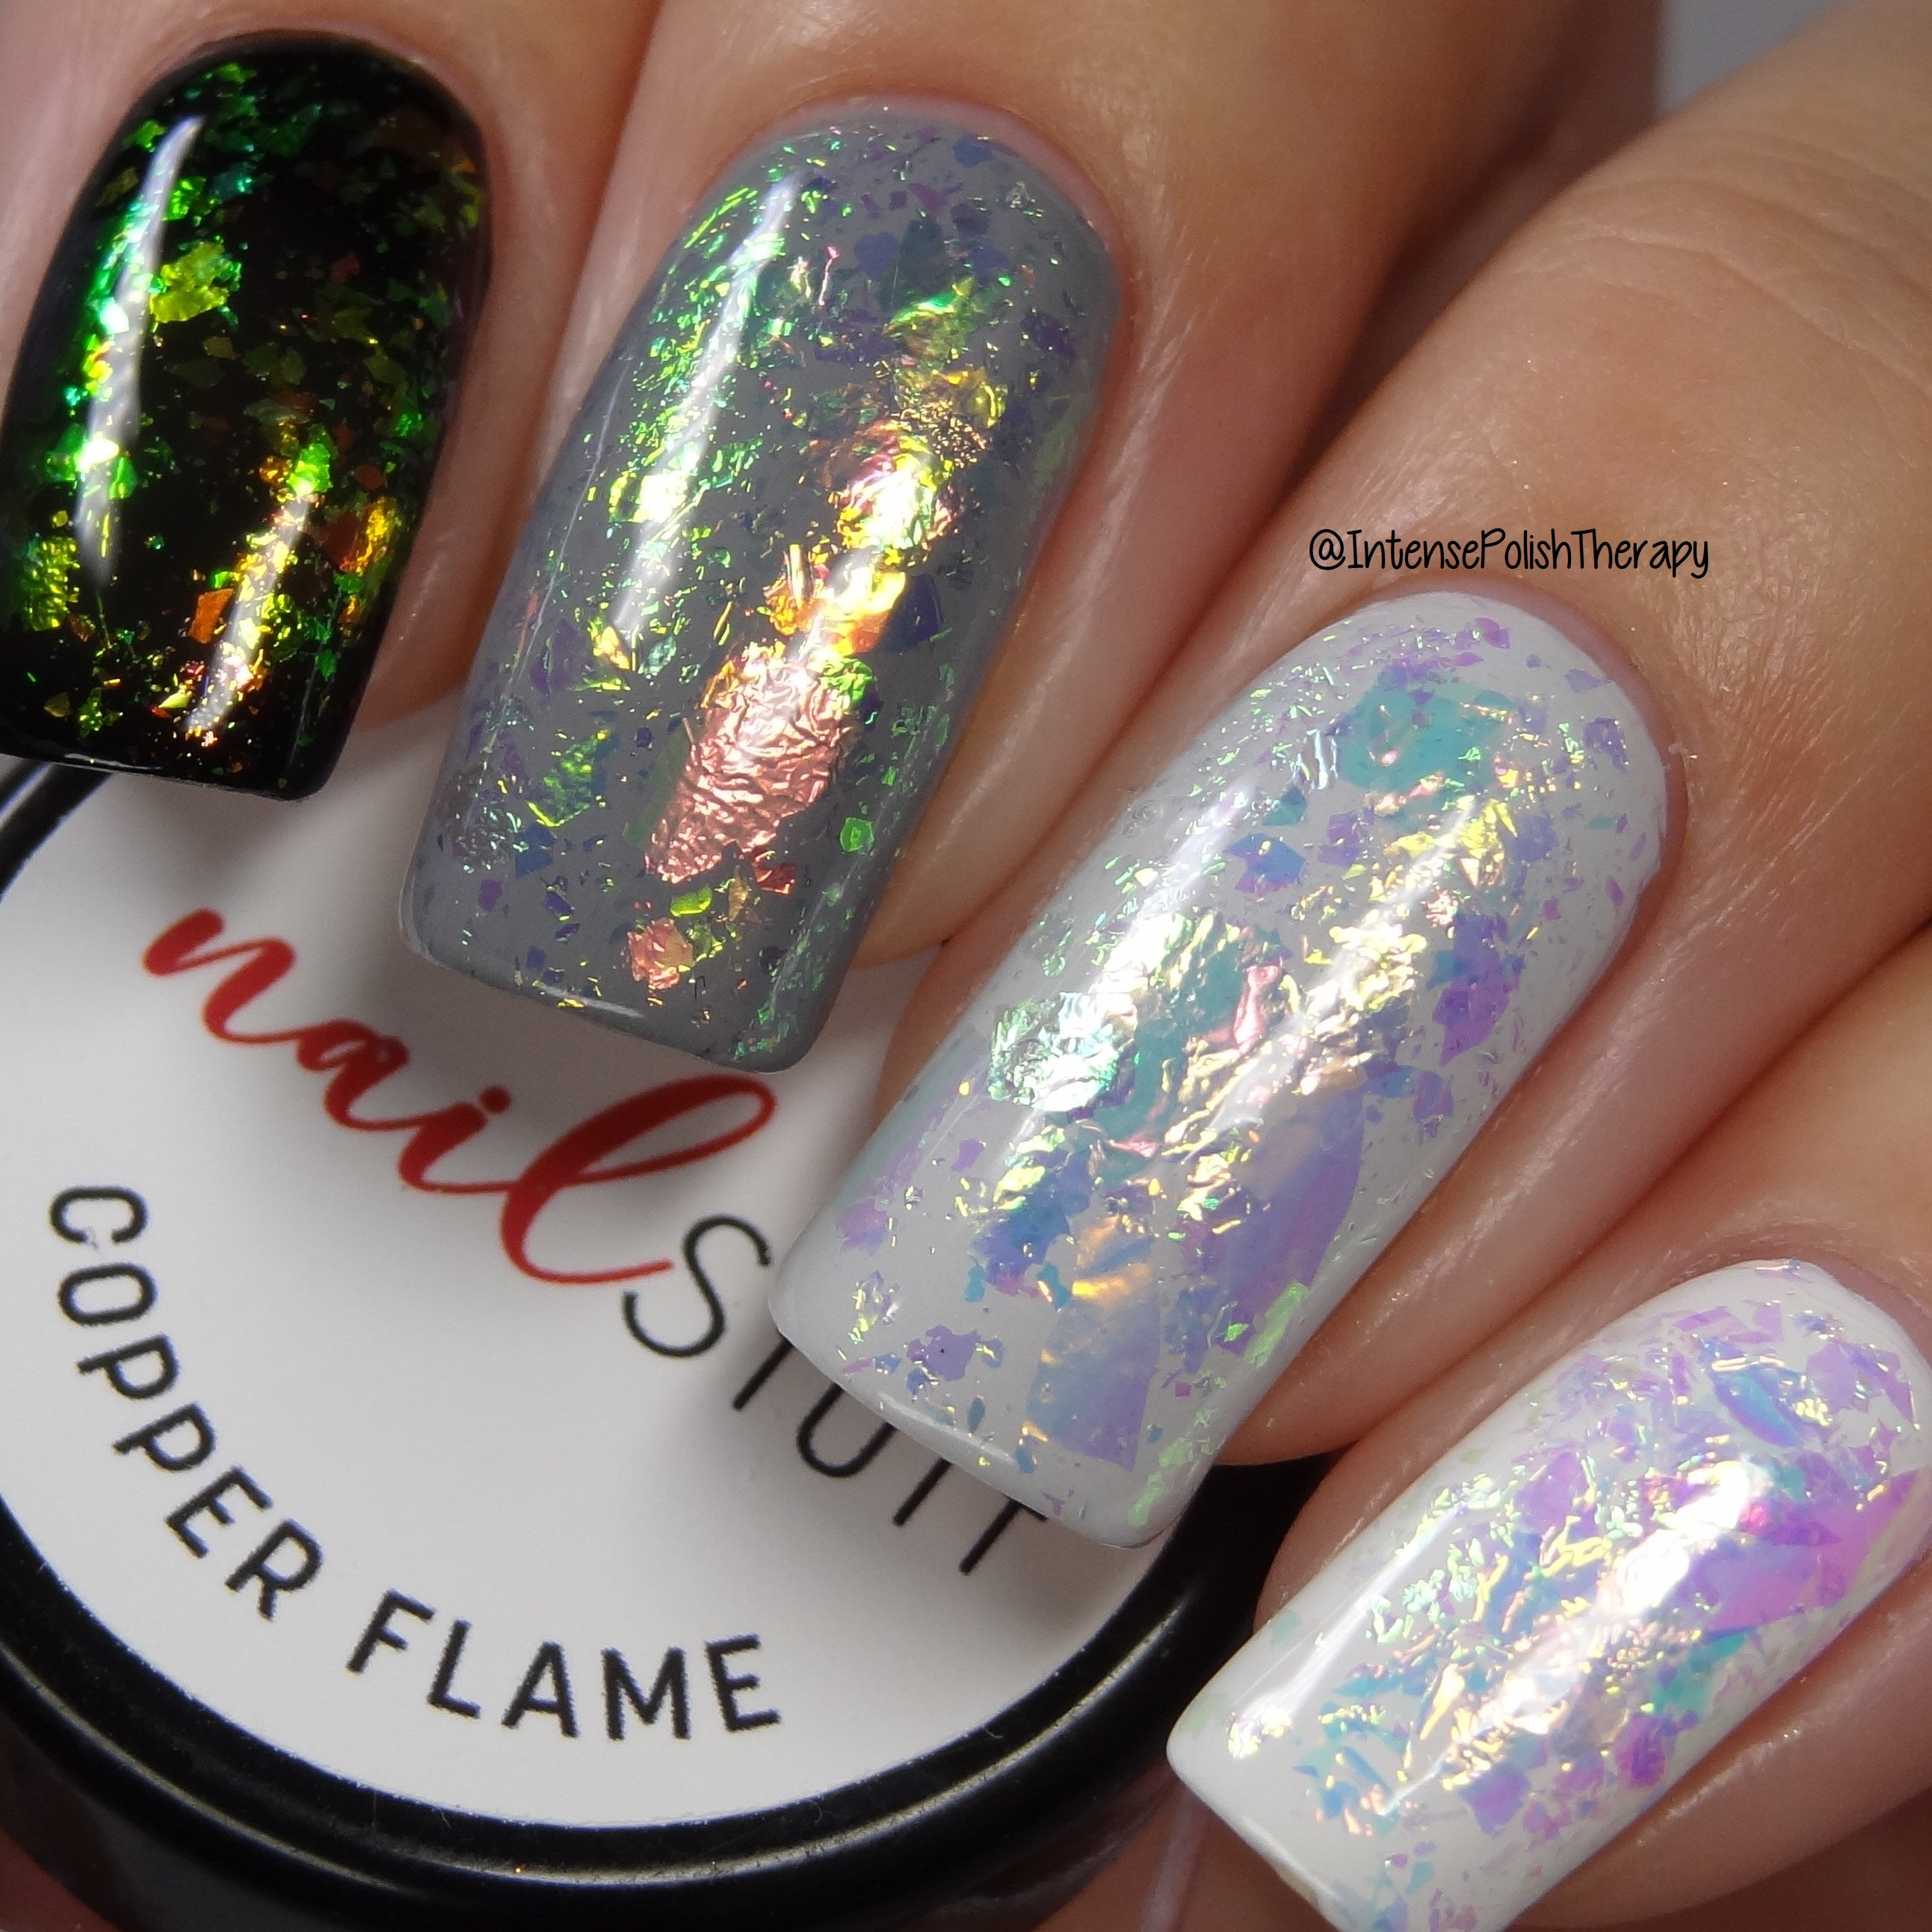 Copper Flame - Iridescent Nail Flakes